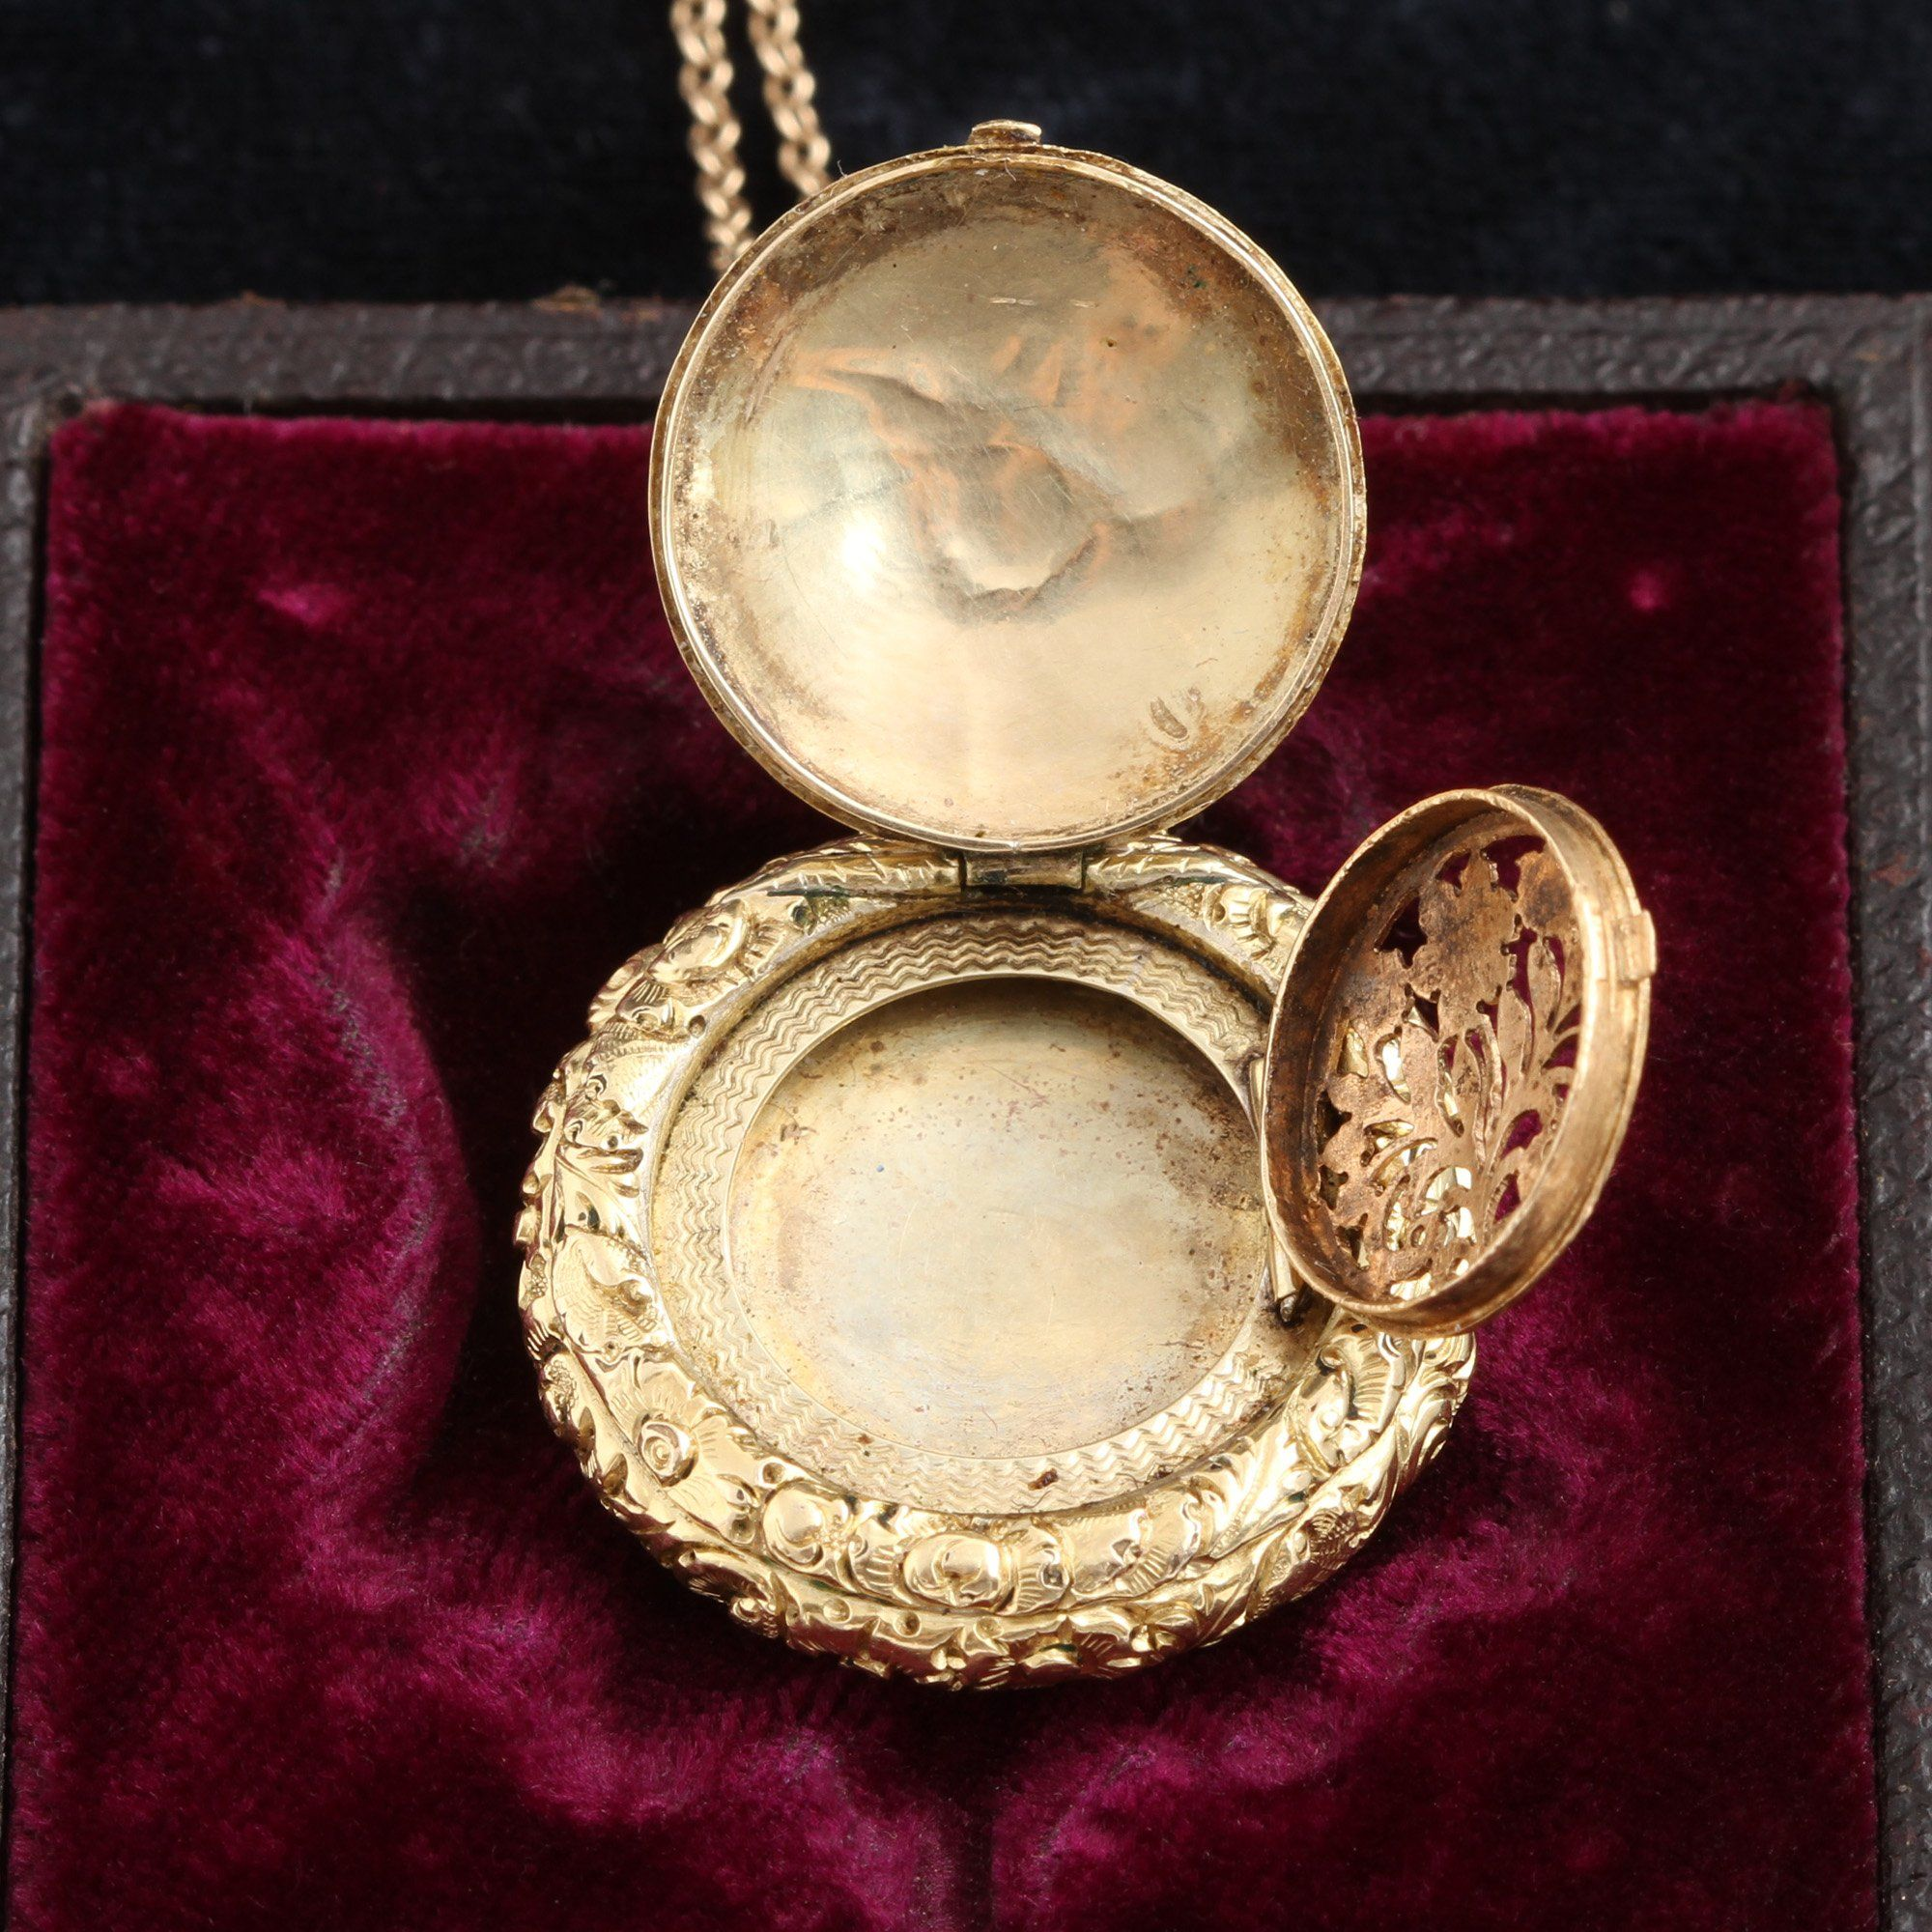 Interior detail of Georgian Vinaigrette with Locket